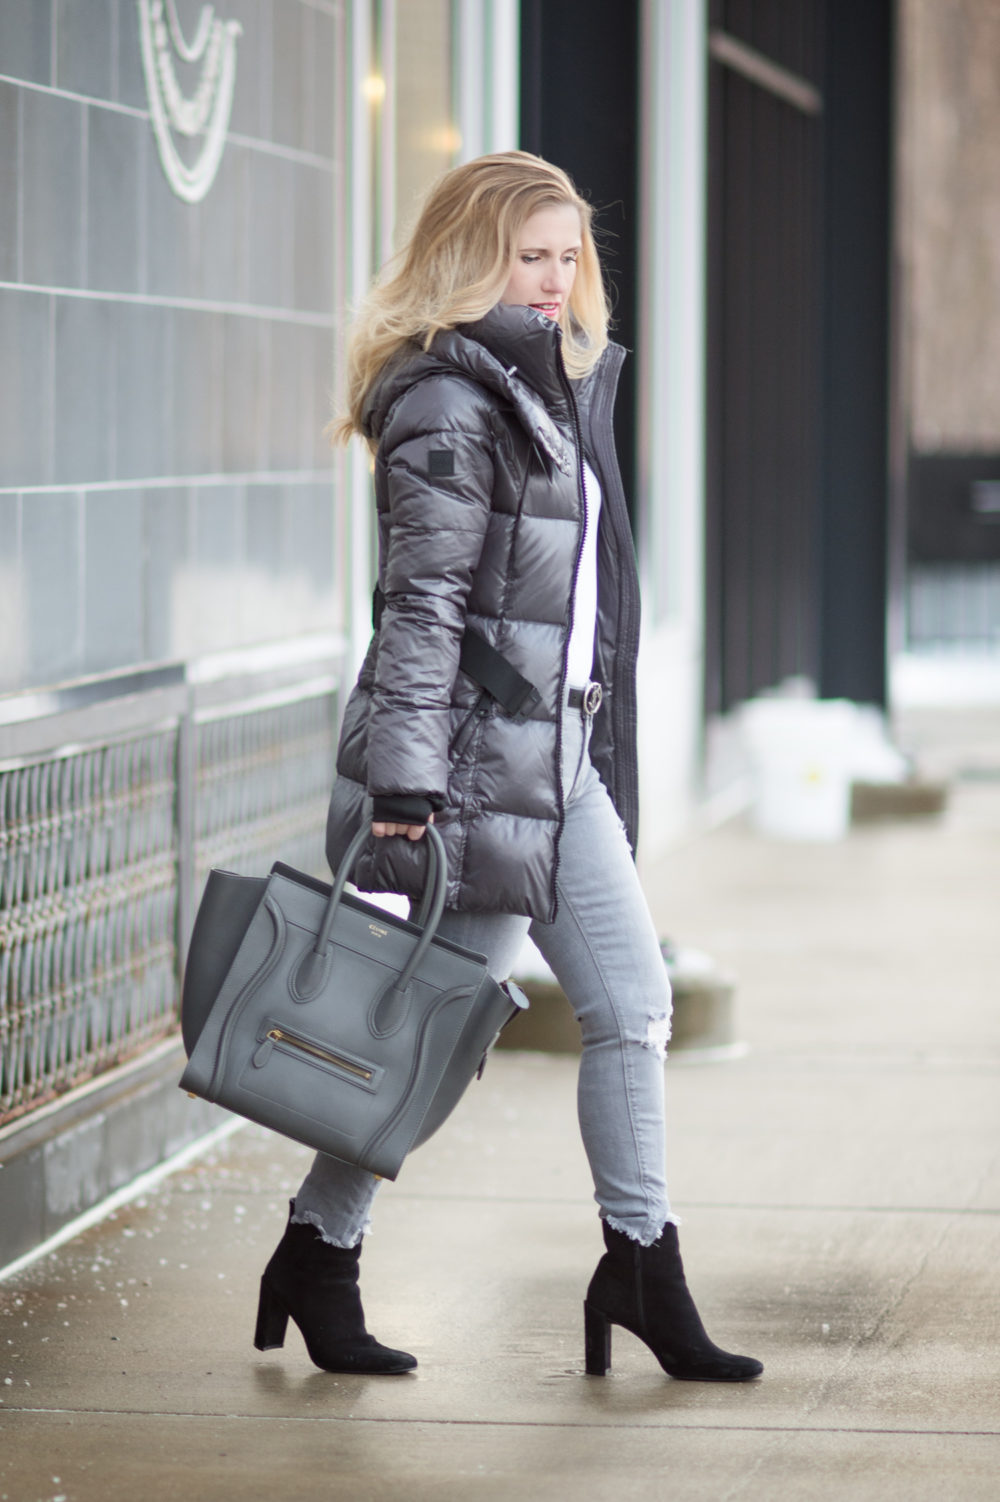 https://www.thebluehydrangeas.com/wp-content/uploads/2018/01/Fashion-for-Petite-Women-SAM-New-Soho-Down-Coat-Express-Gray-Mid-Rise-Destroyed-Ankle-Jeans-Celine-Luggage-Tote-2.jpg